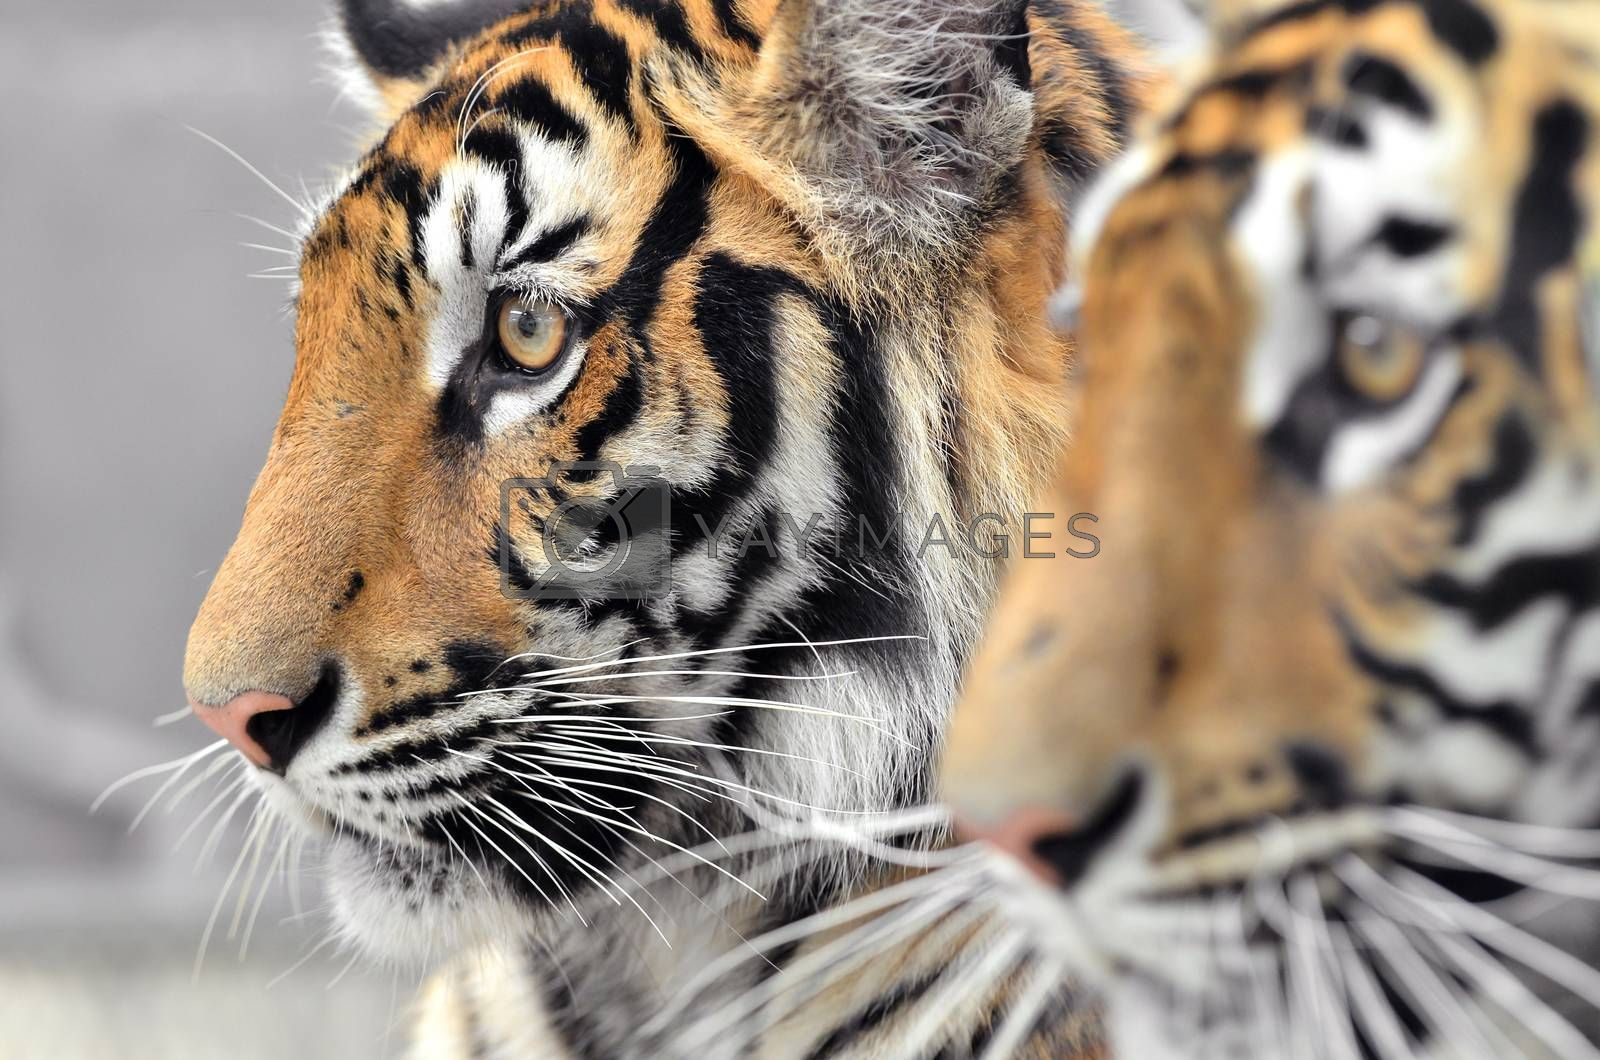 Royalty free image of bengal tiger face by anankkml